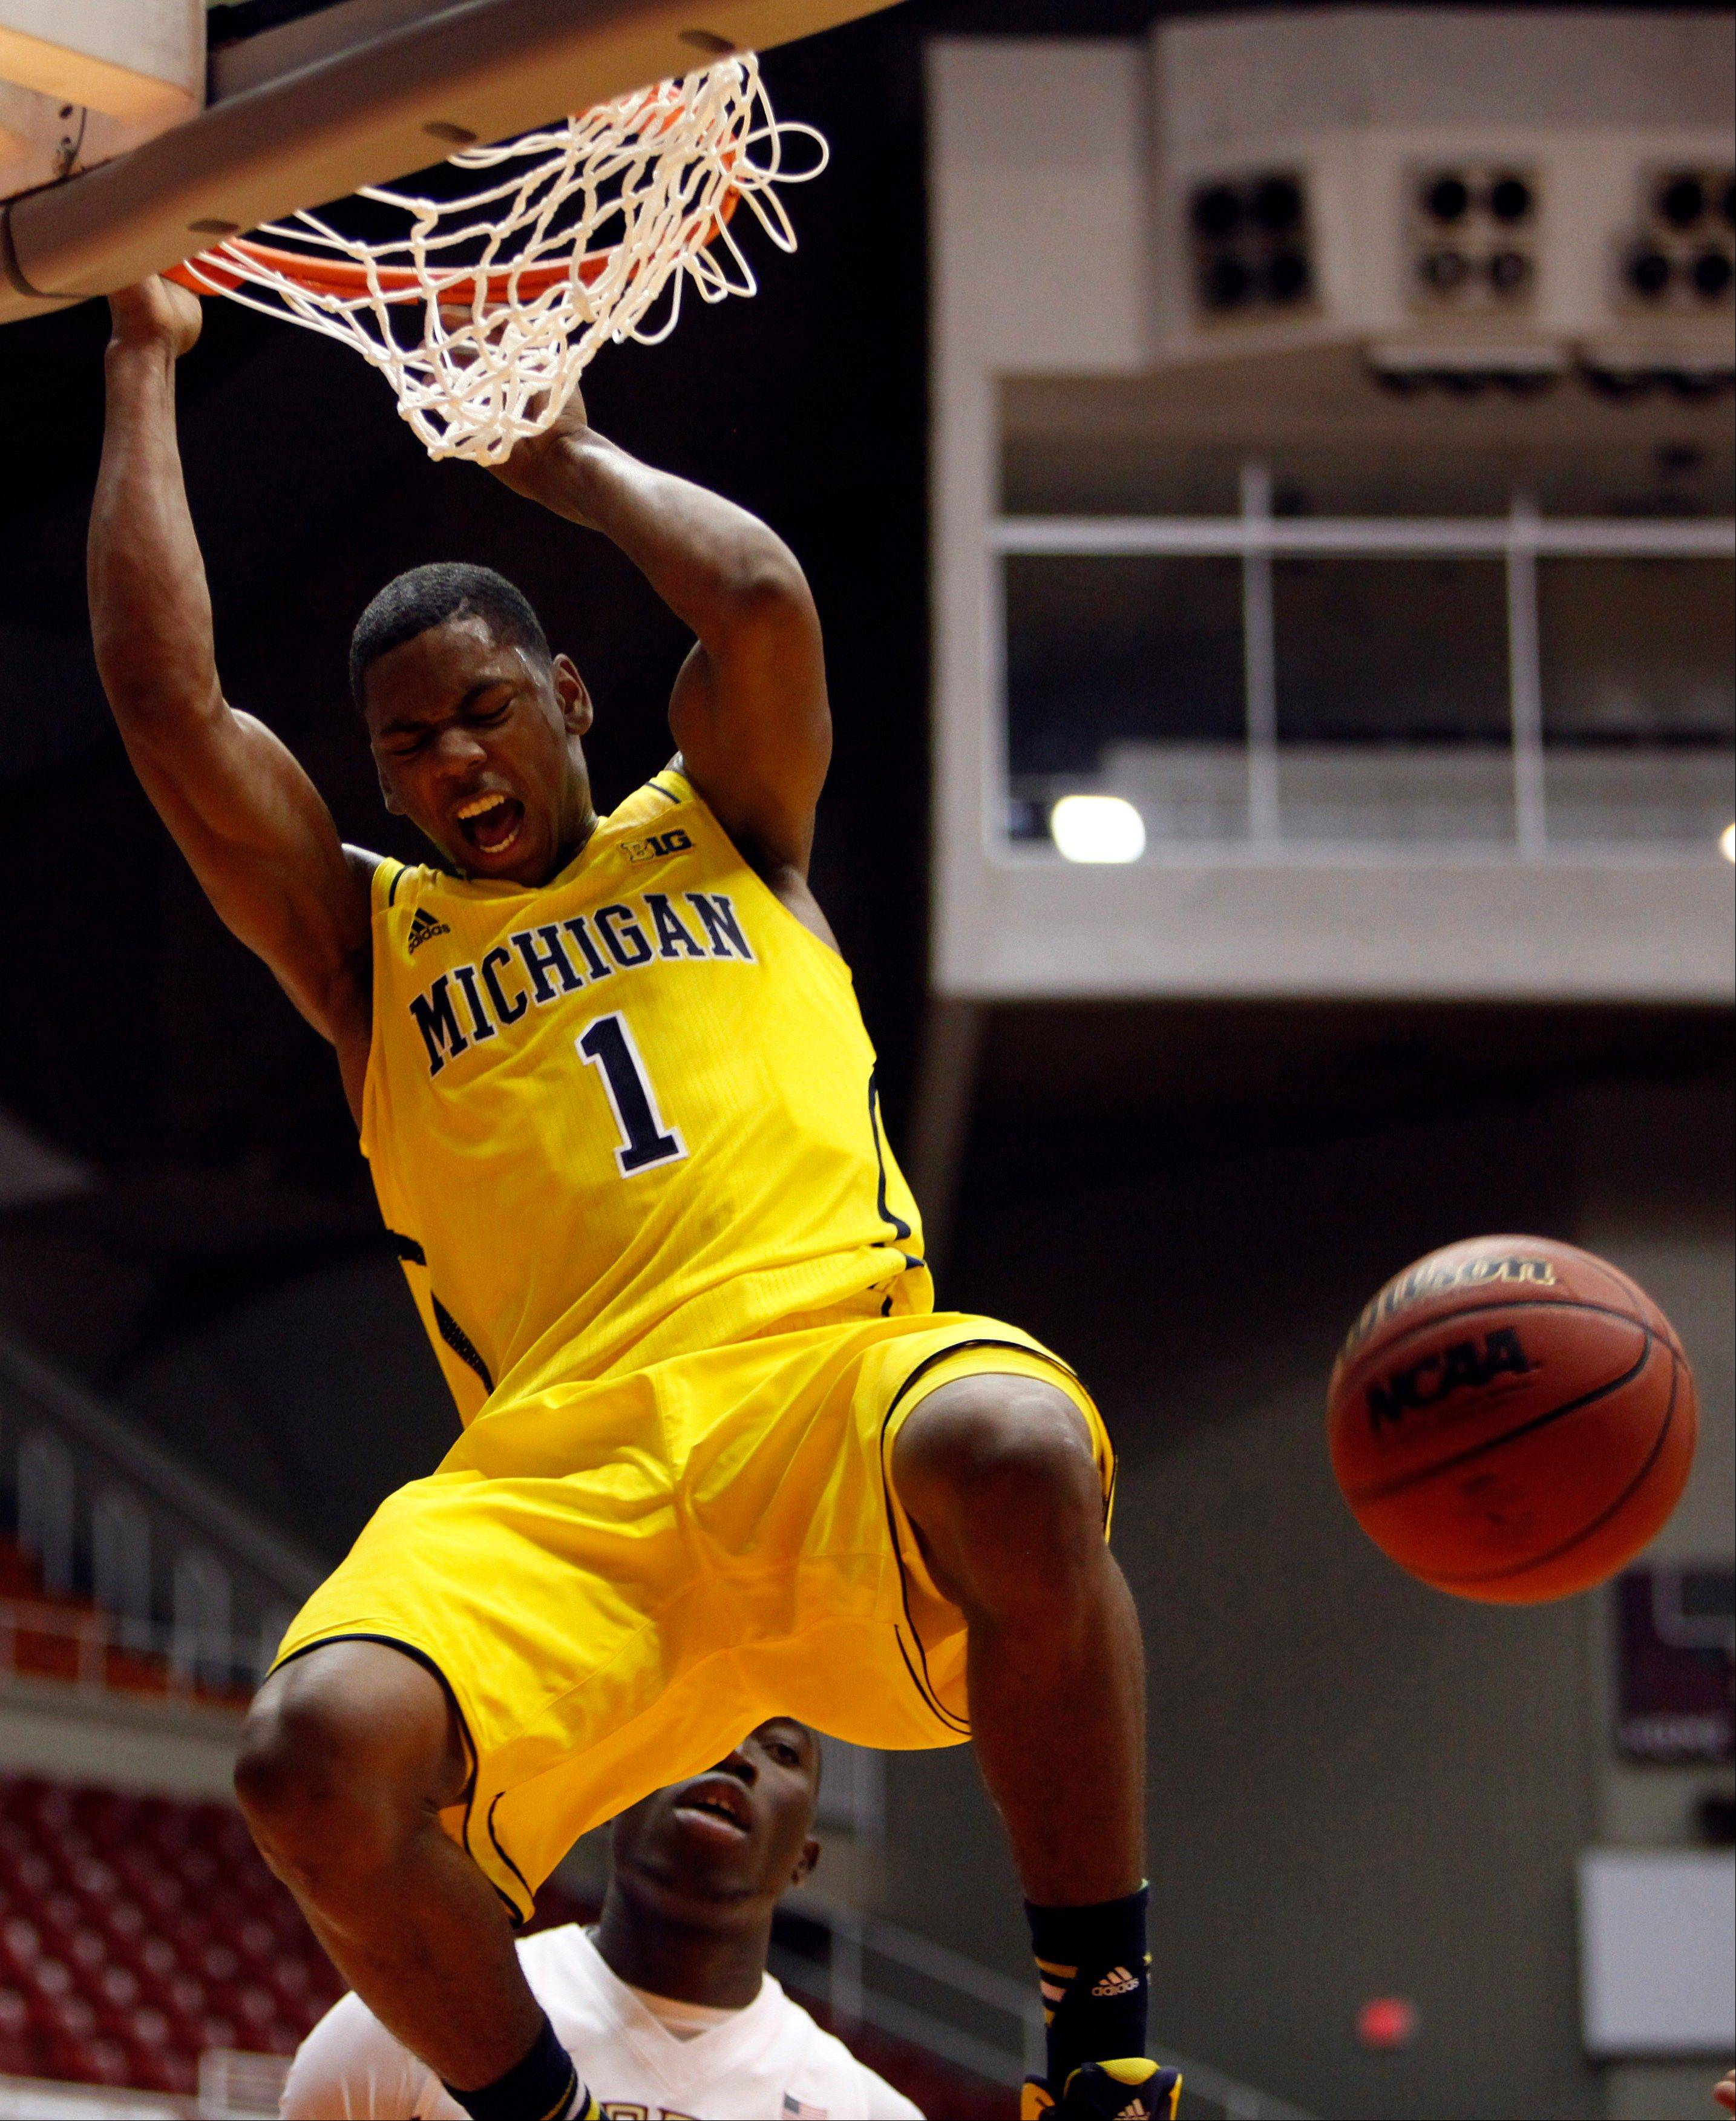 Michigan forward Glenn Robinson dunks during Friday's game against Florida State in San Juan, Puerto Rico.